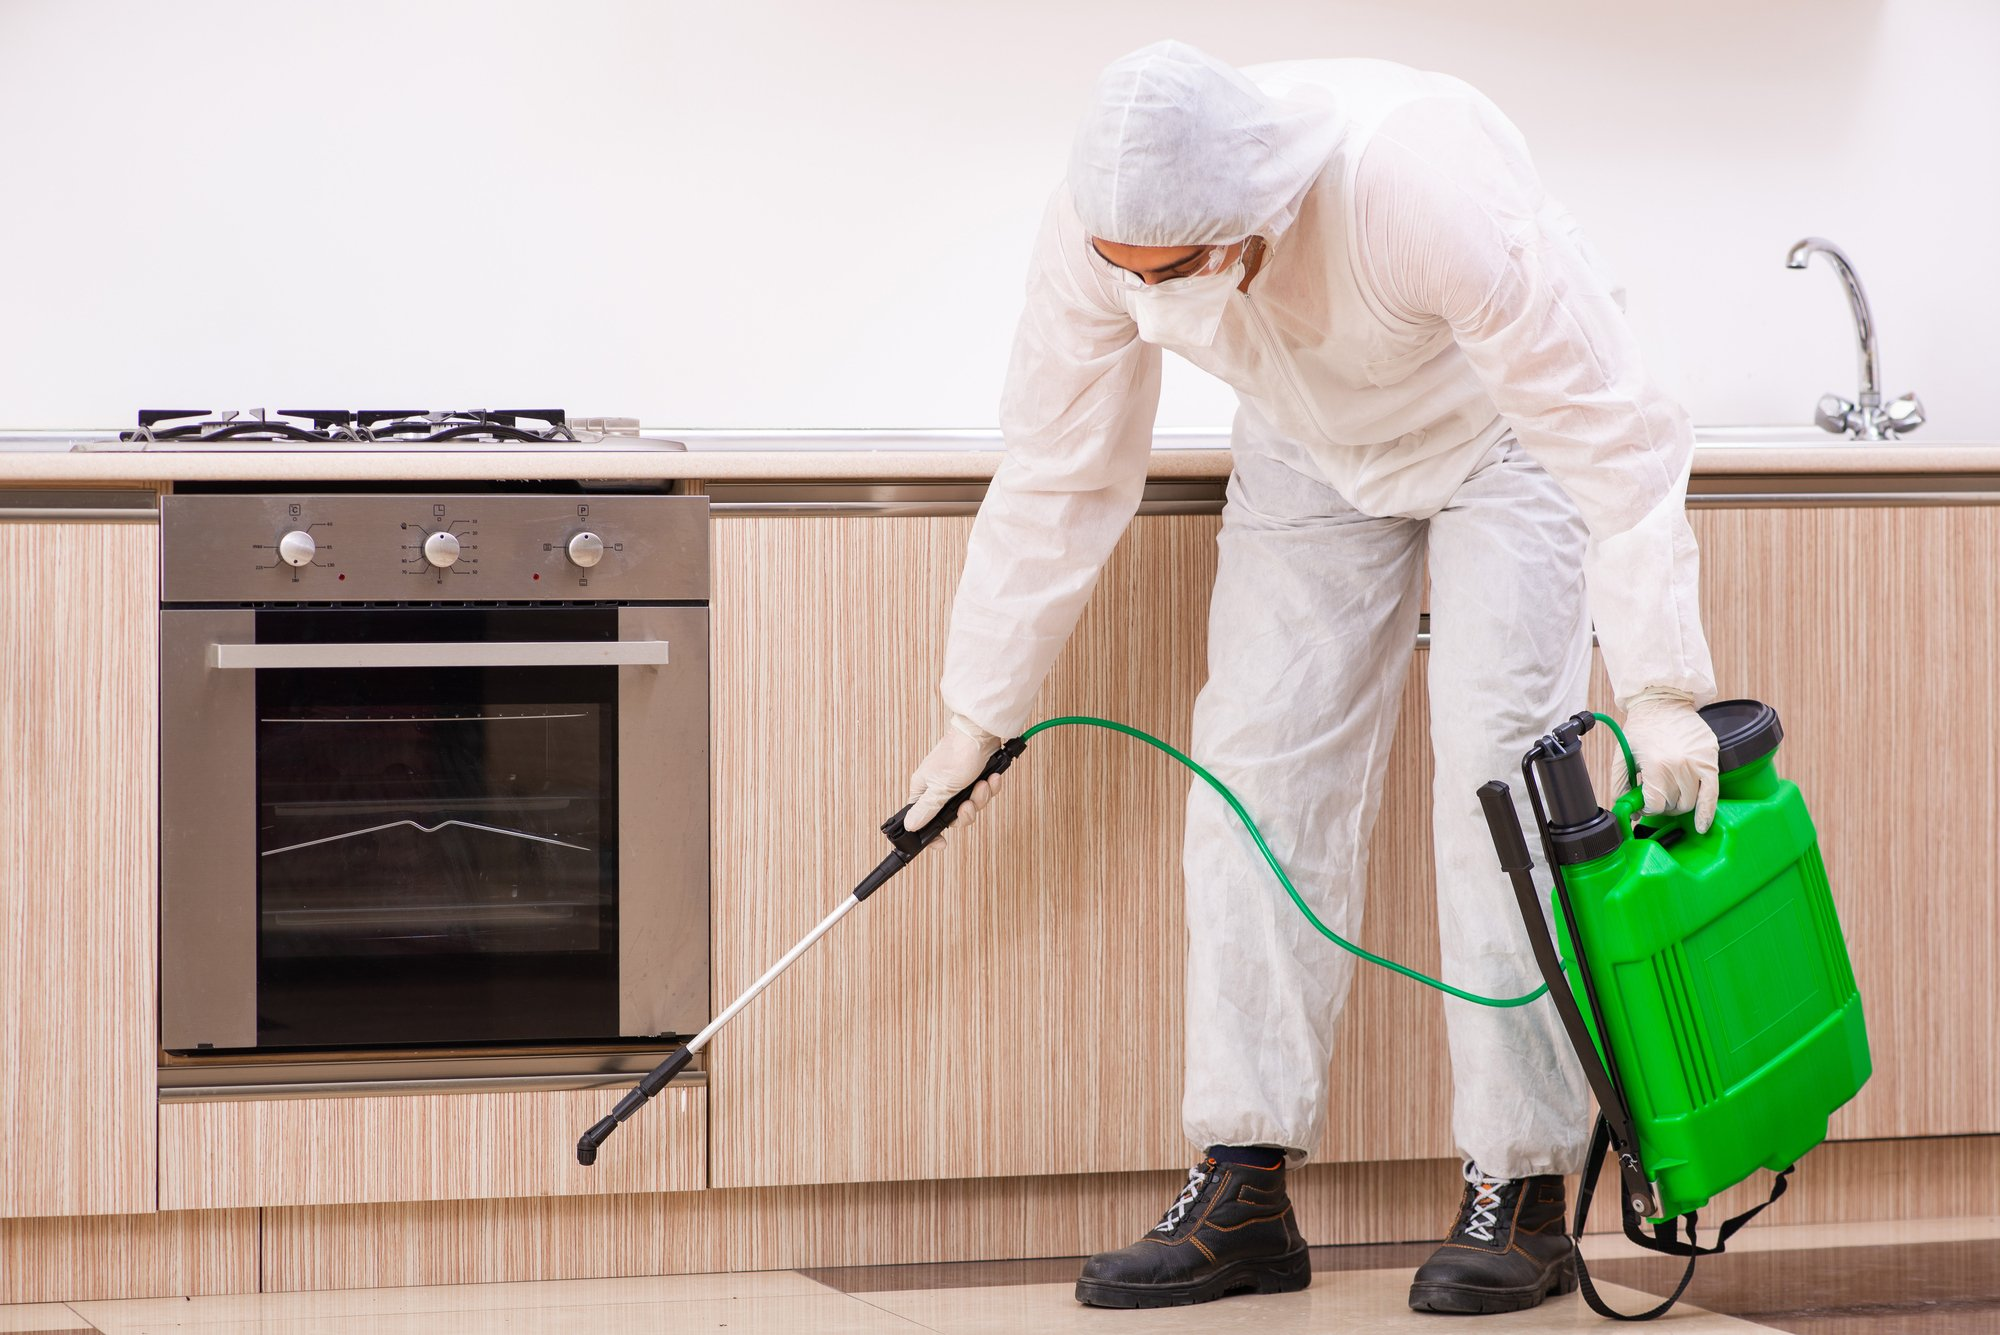 Professional contractor doing pest control at kitchen